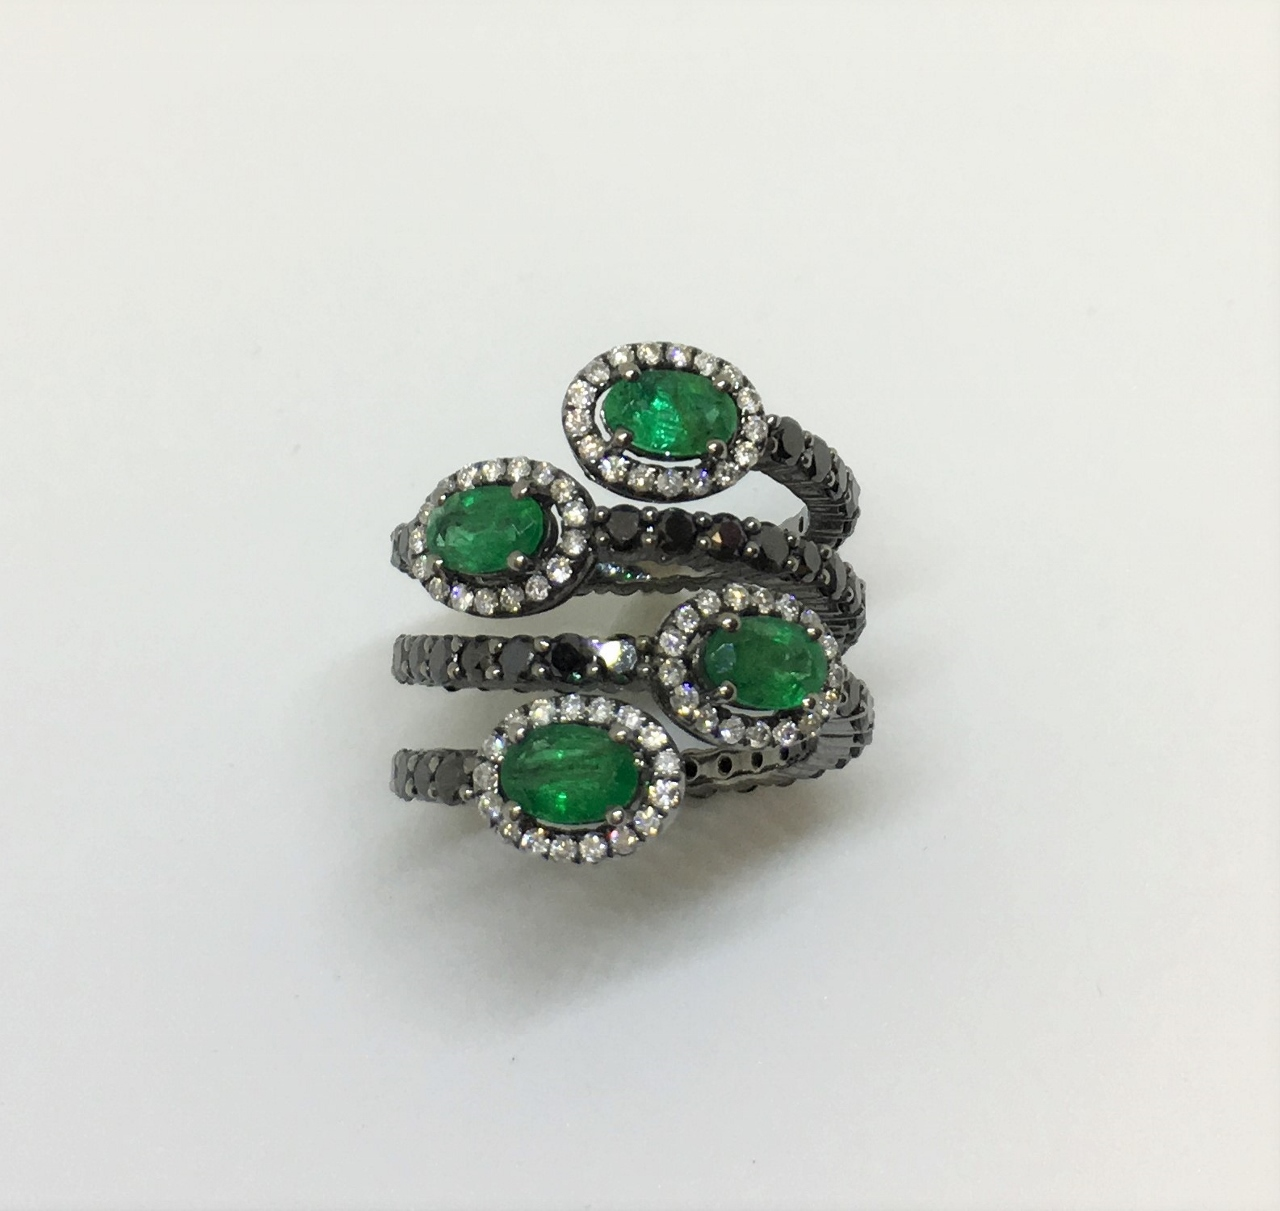 Over 4 Carats Black & White Diamond & Emerald Ring